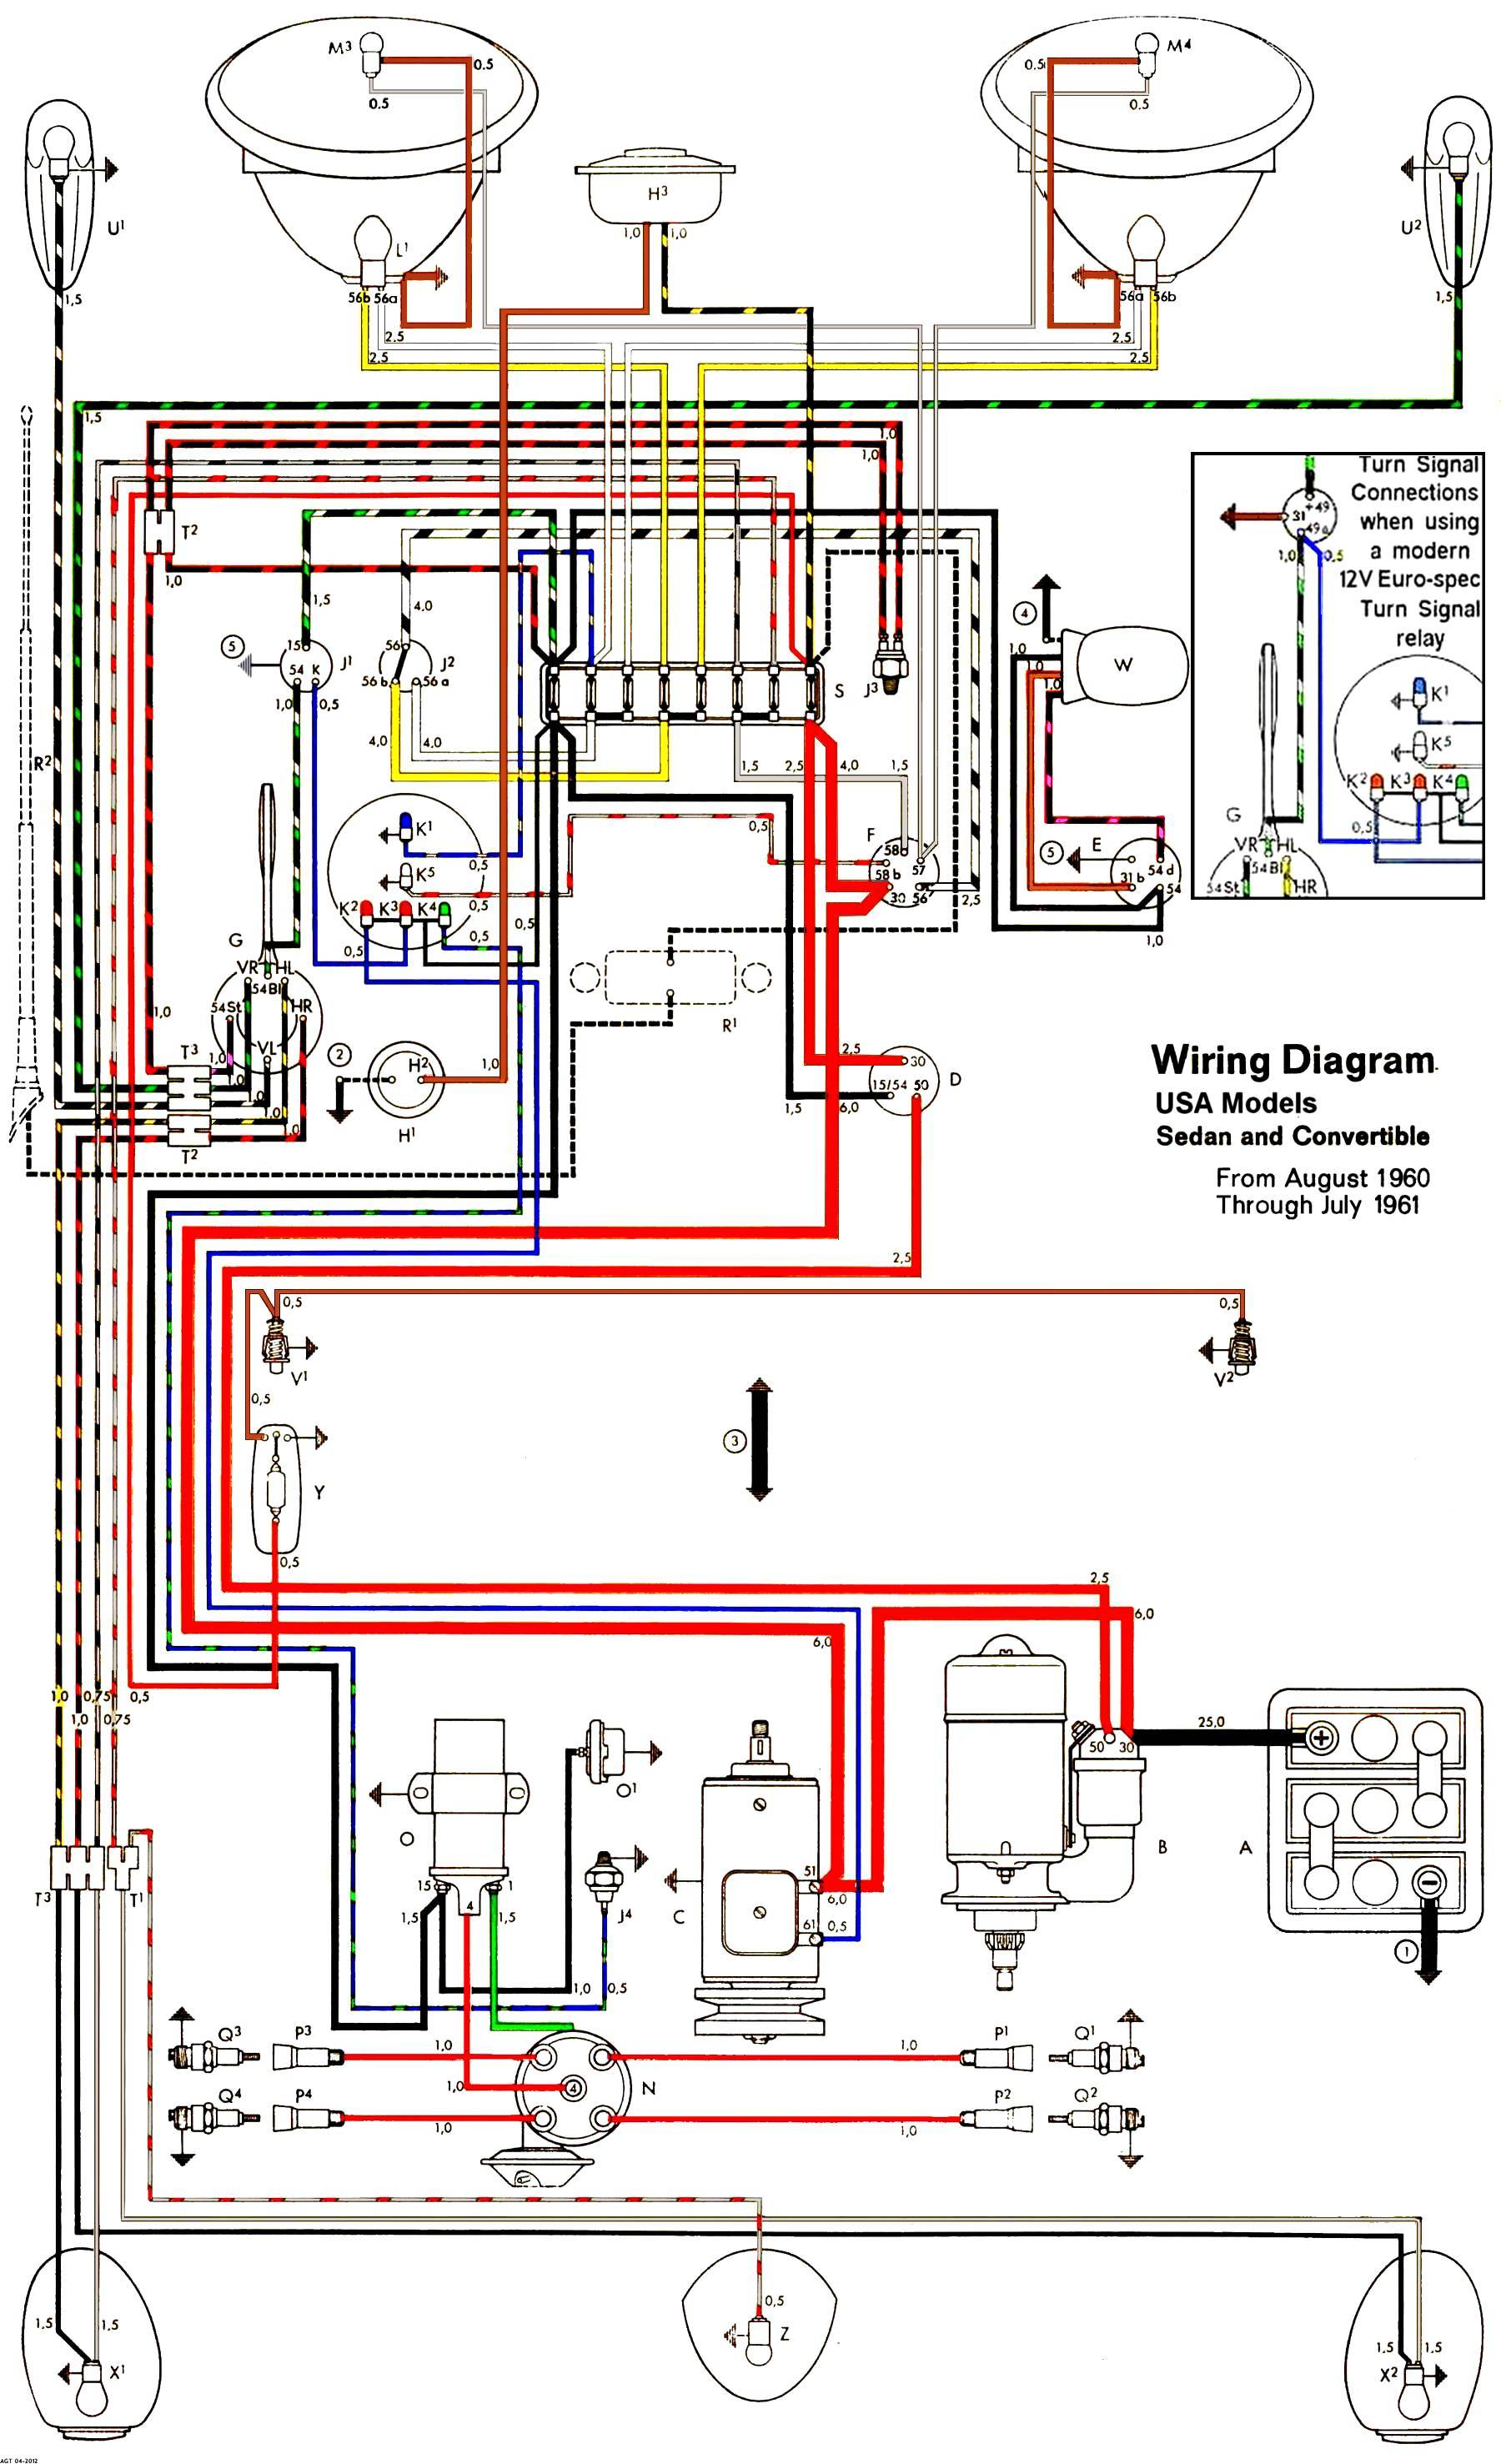 Type 1 Wiring Diagrams 1972 Ford F100 Headlight Switch Diagram